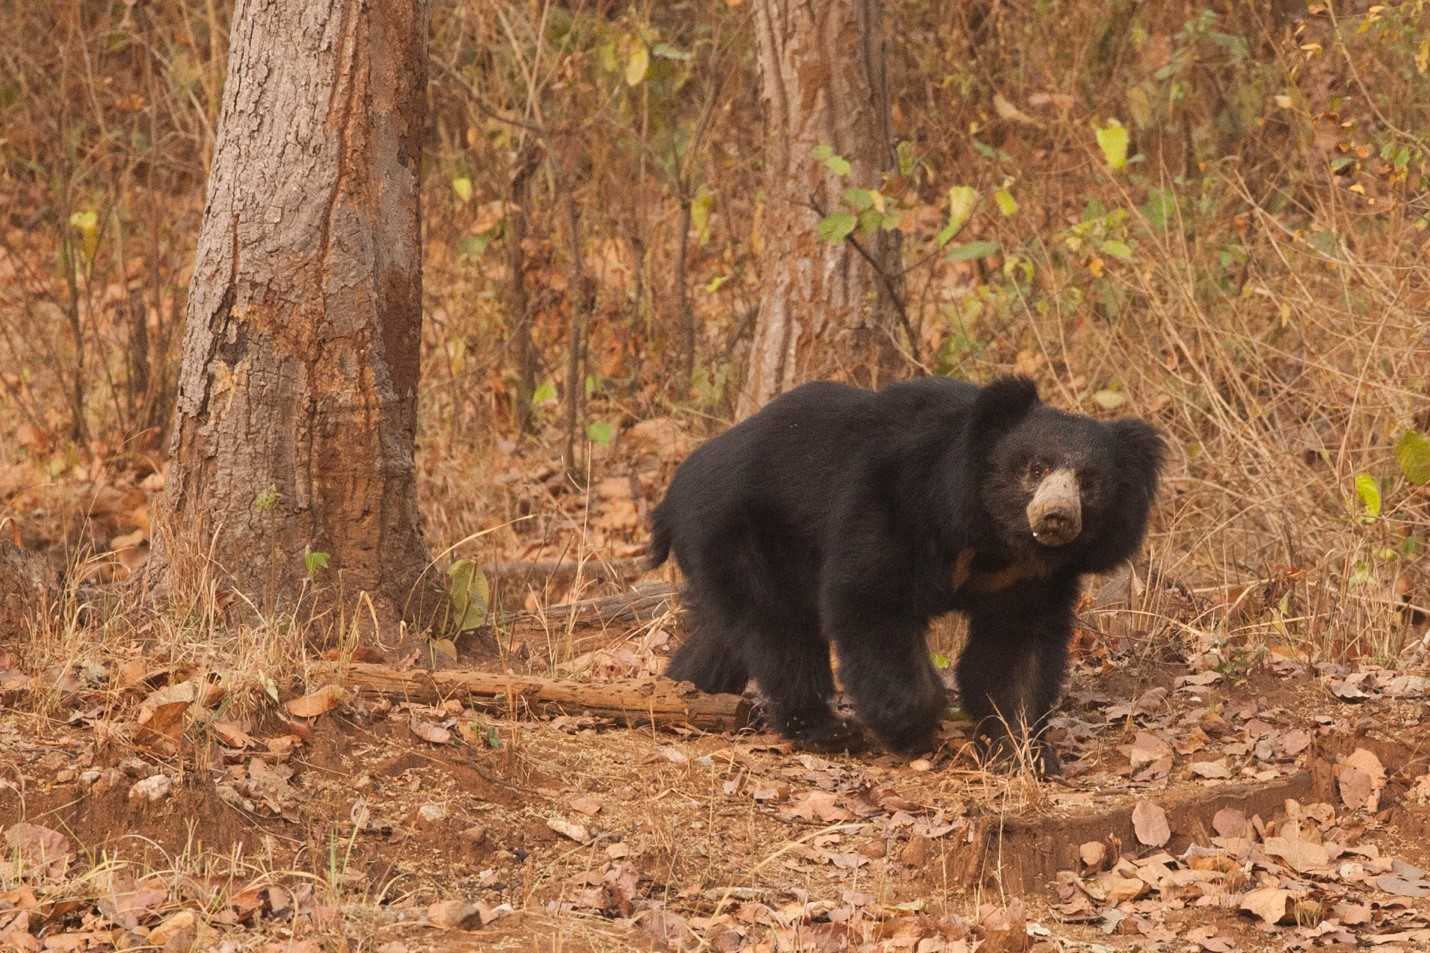 a sloth bear looks from a distance